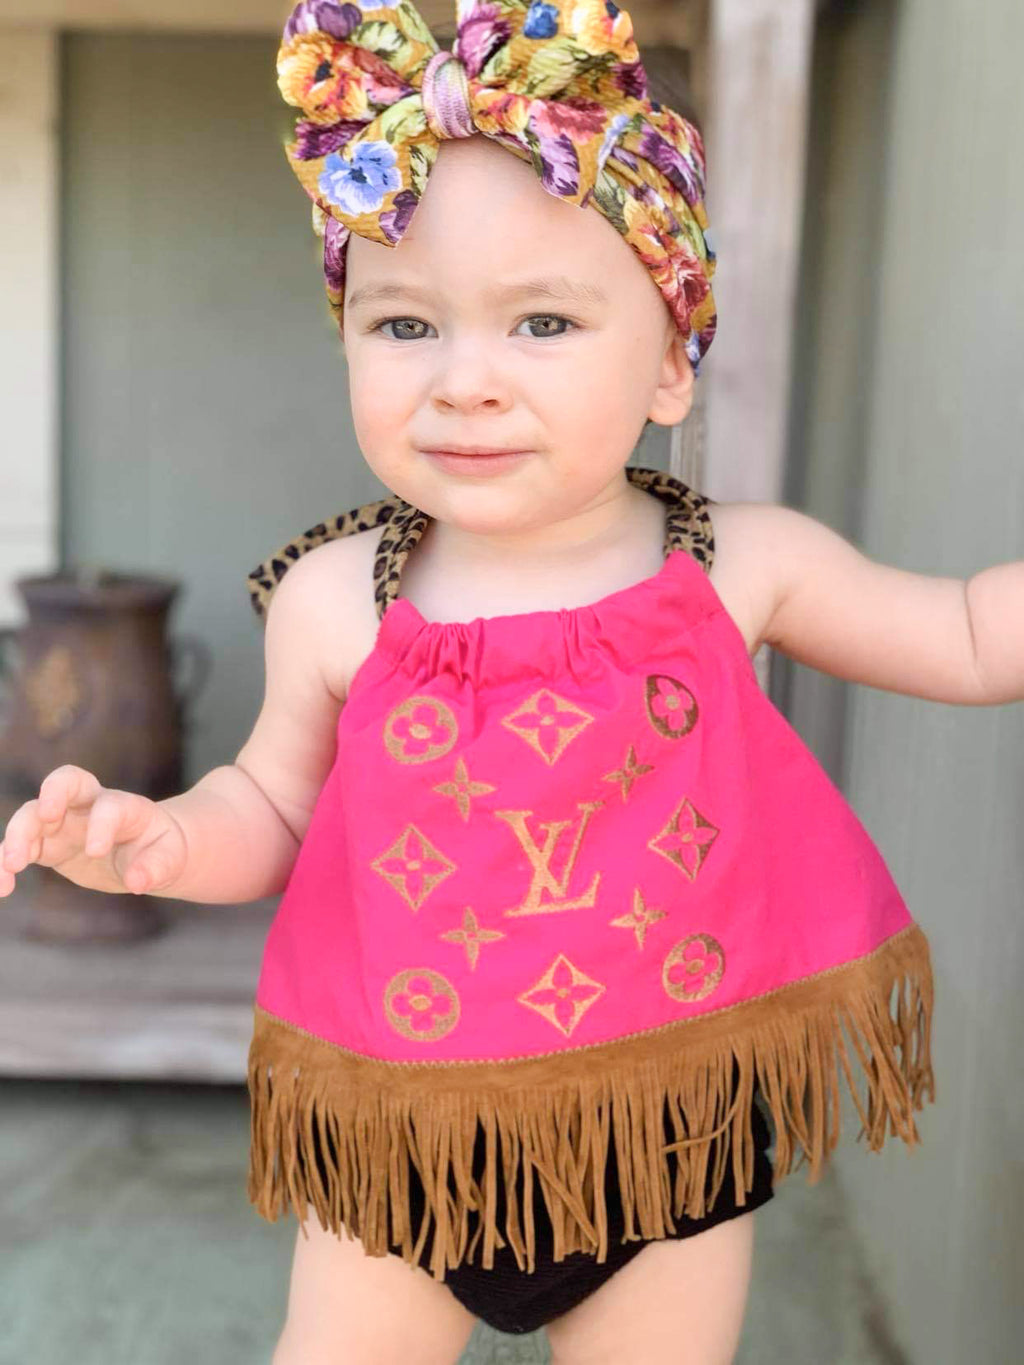 Baby/Toddler LV Halter Top